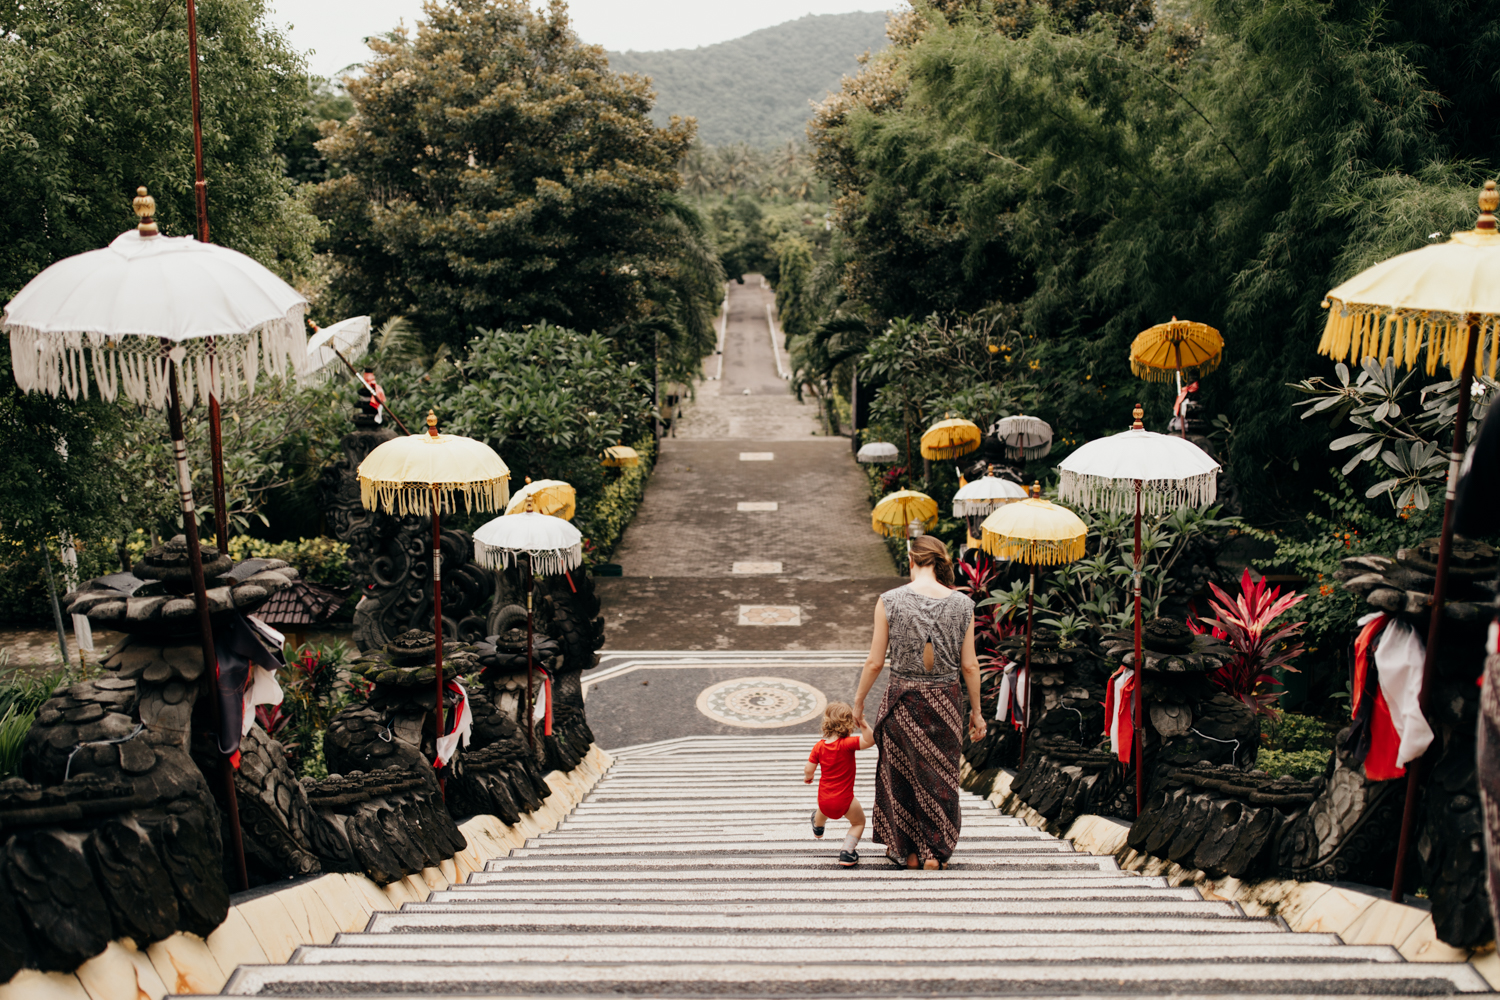 Kid walking temple stairs with mother in Bali, Indonesia